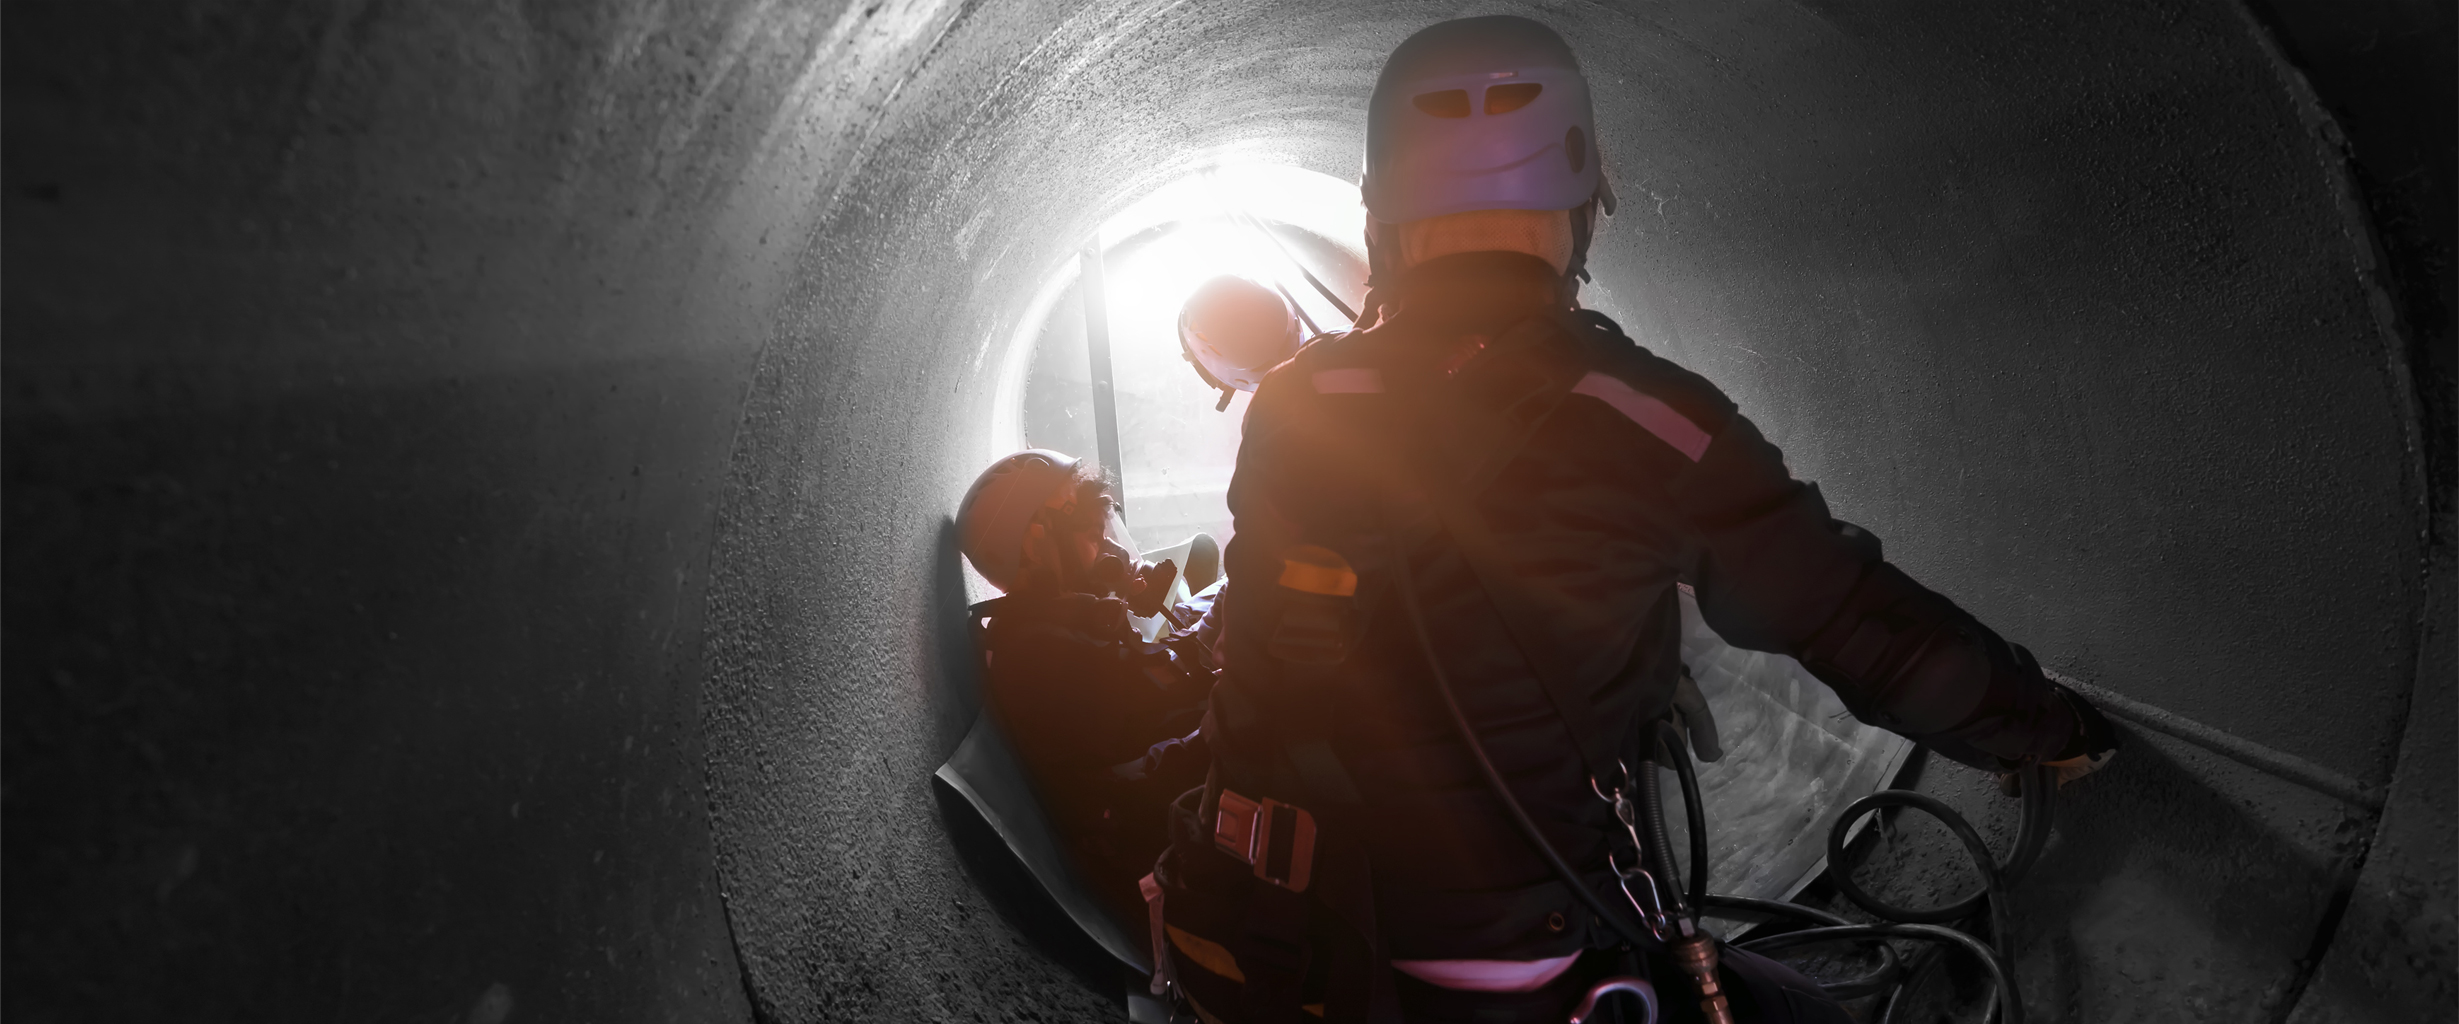 Confined Space Worker Safety